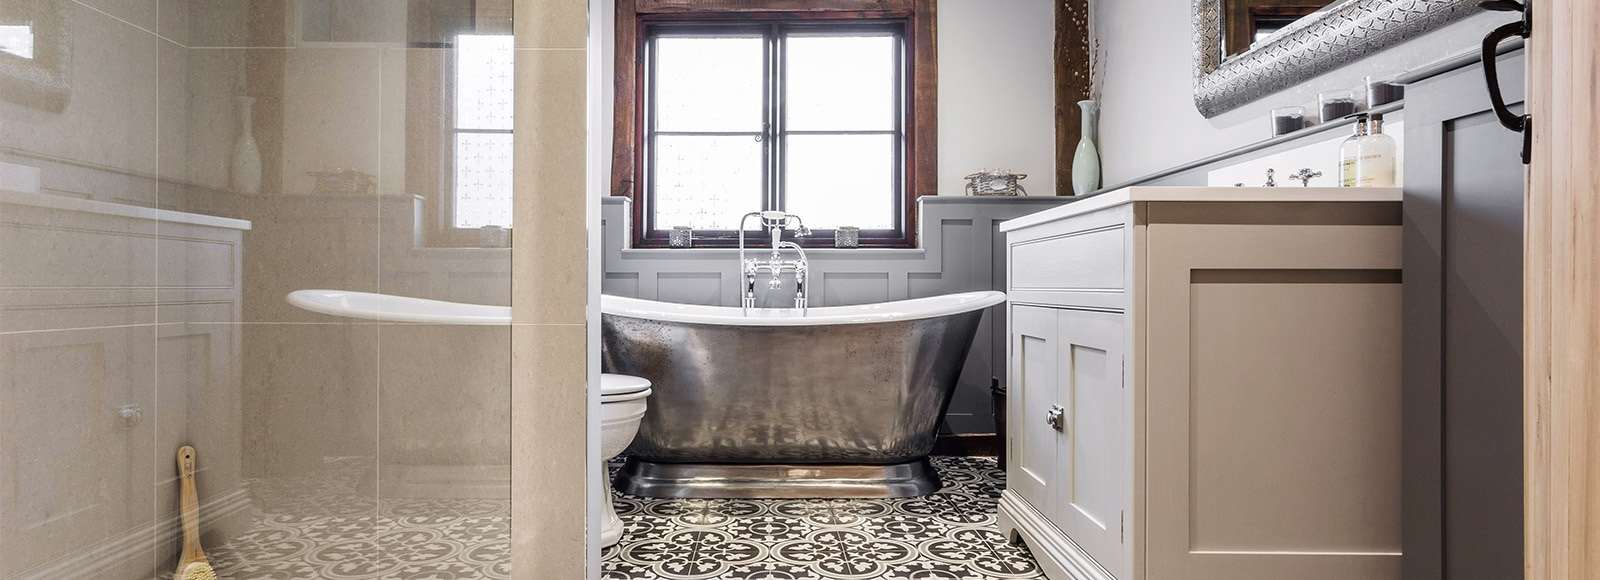 Bespoke Traditional Style Bathroom - Burlanes handmade bathroom vanity unit with beautiful cast iron roll top bath by Hurlingham.